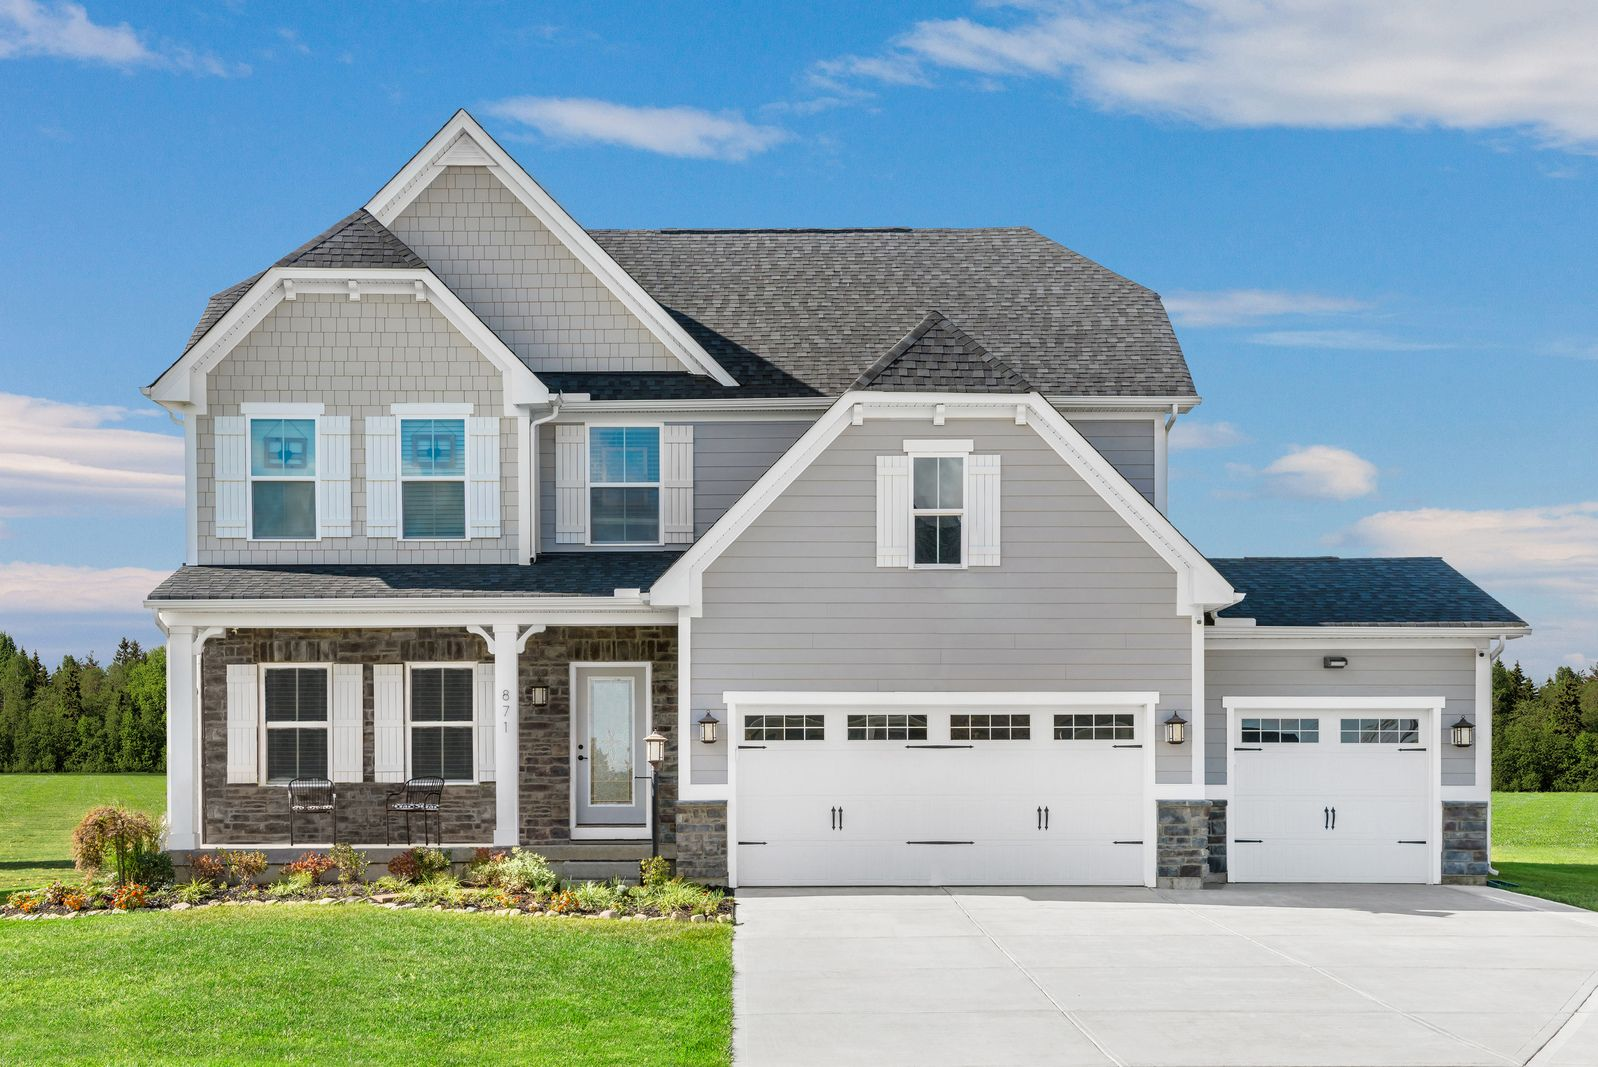 MAGNOLIA GROVE RESERVE - FROM THE LOW $400S:Spacious homes in a park-like setting in West Murfreesboro w/ resort-style amenities & Rockvale schools.Schedule a visit to tour our newly released homesites available now & choose your dream home!